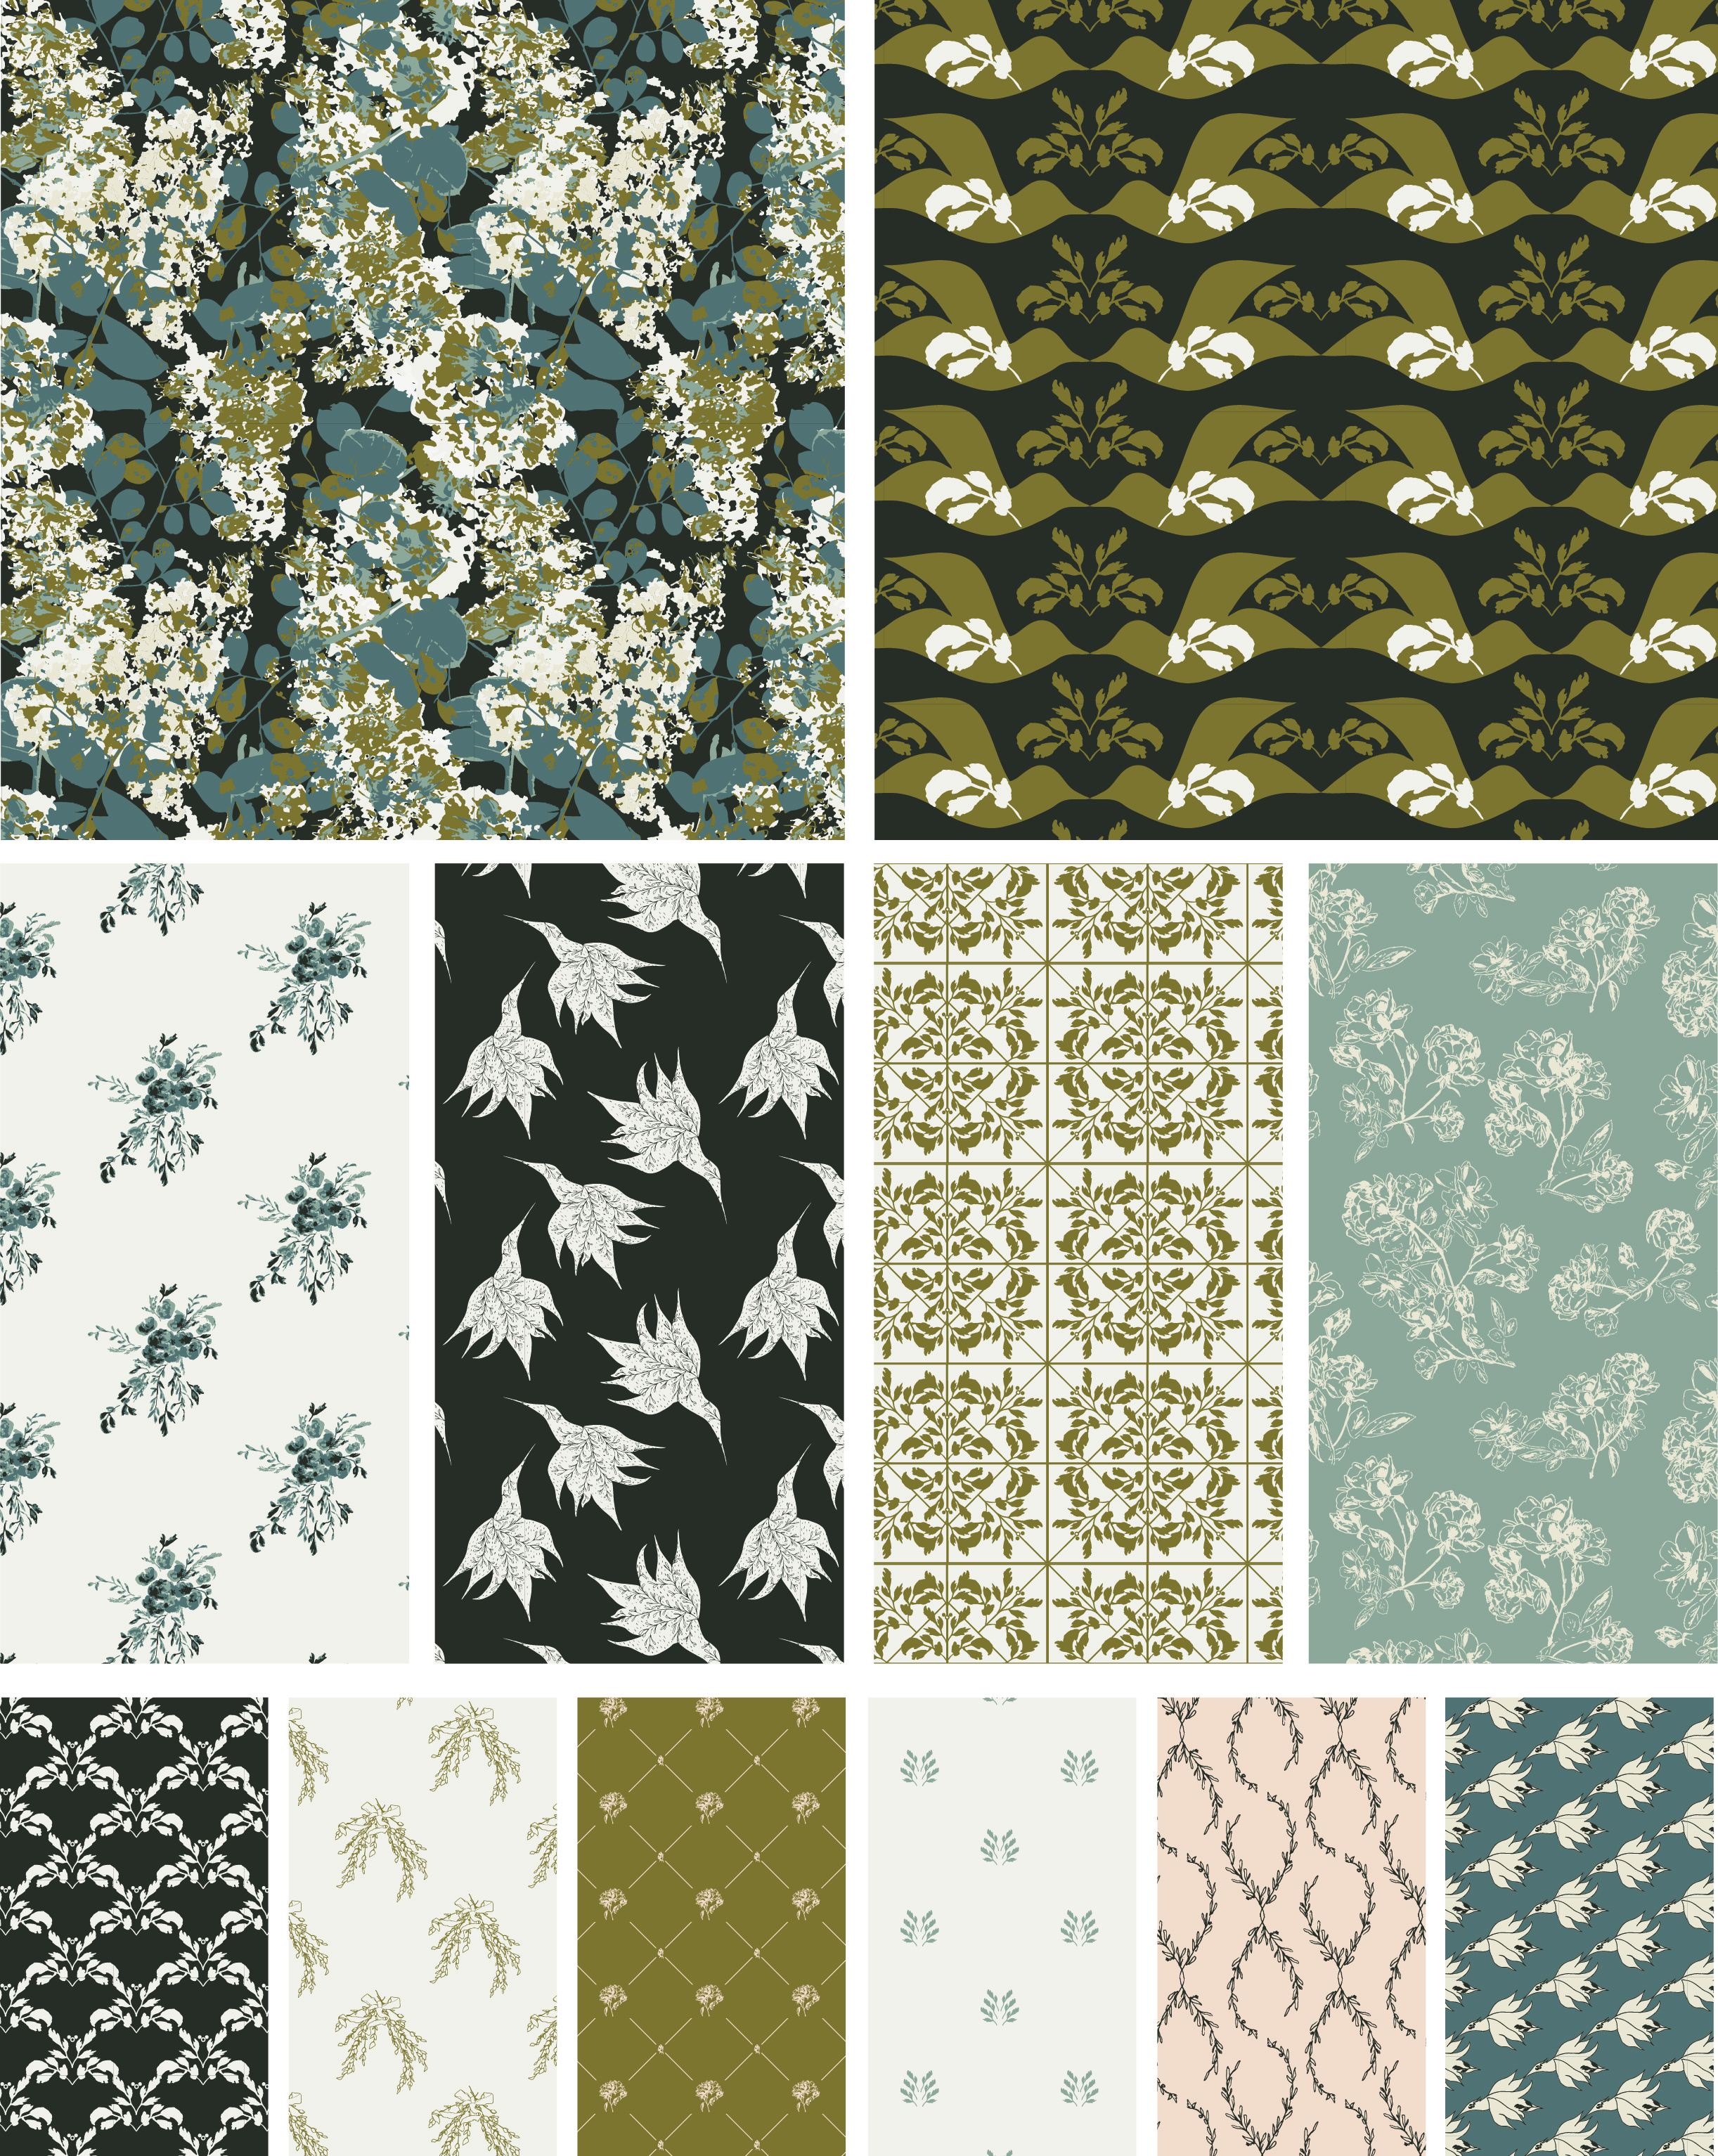 The Heritage Collection | surface pattern design by HOPE johnson